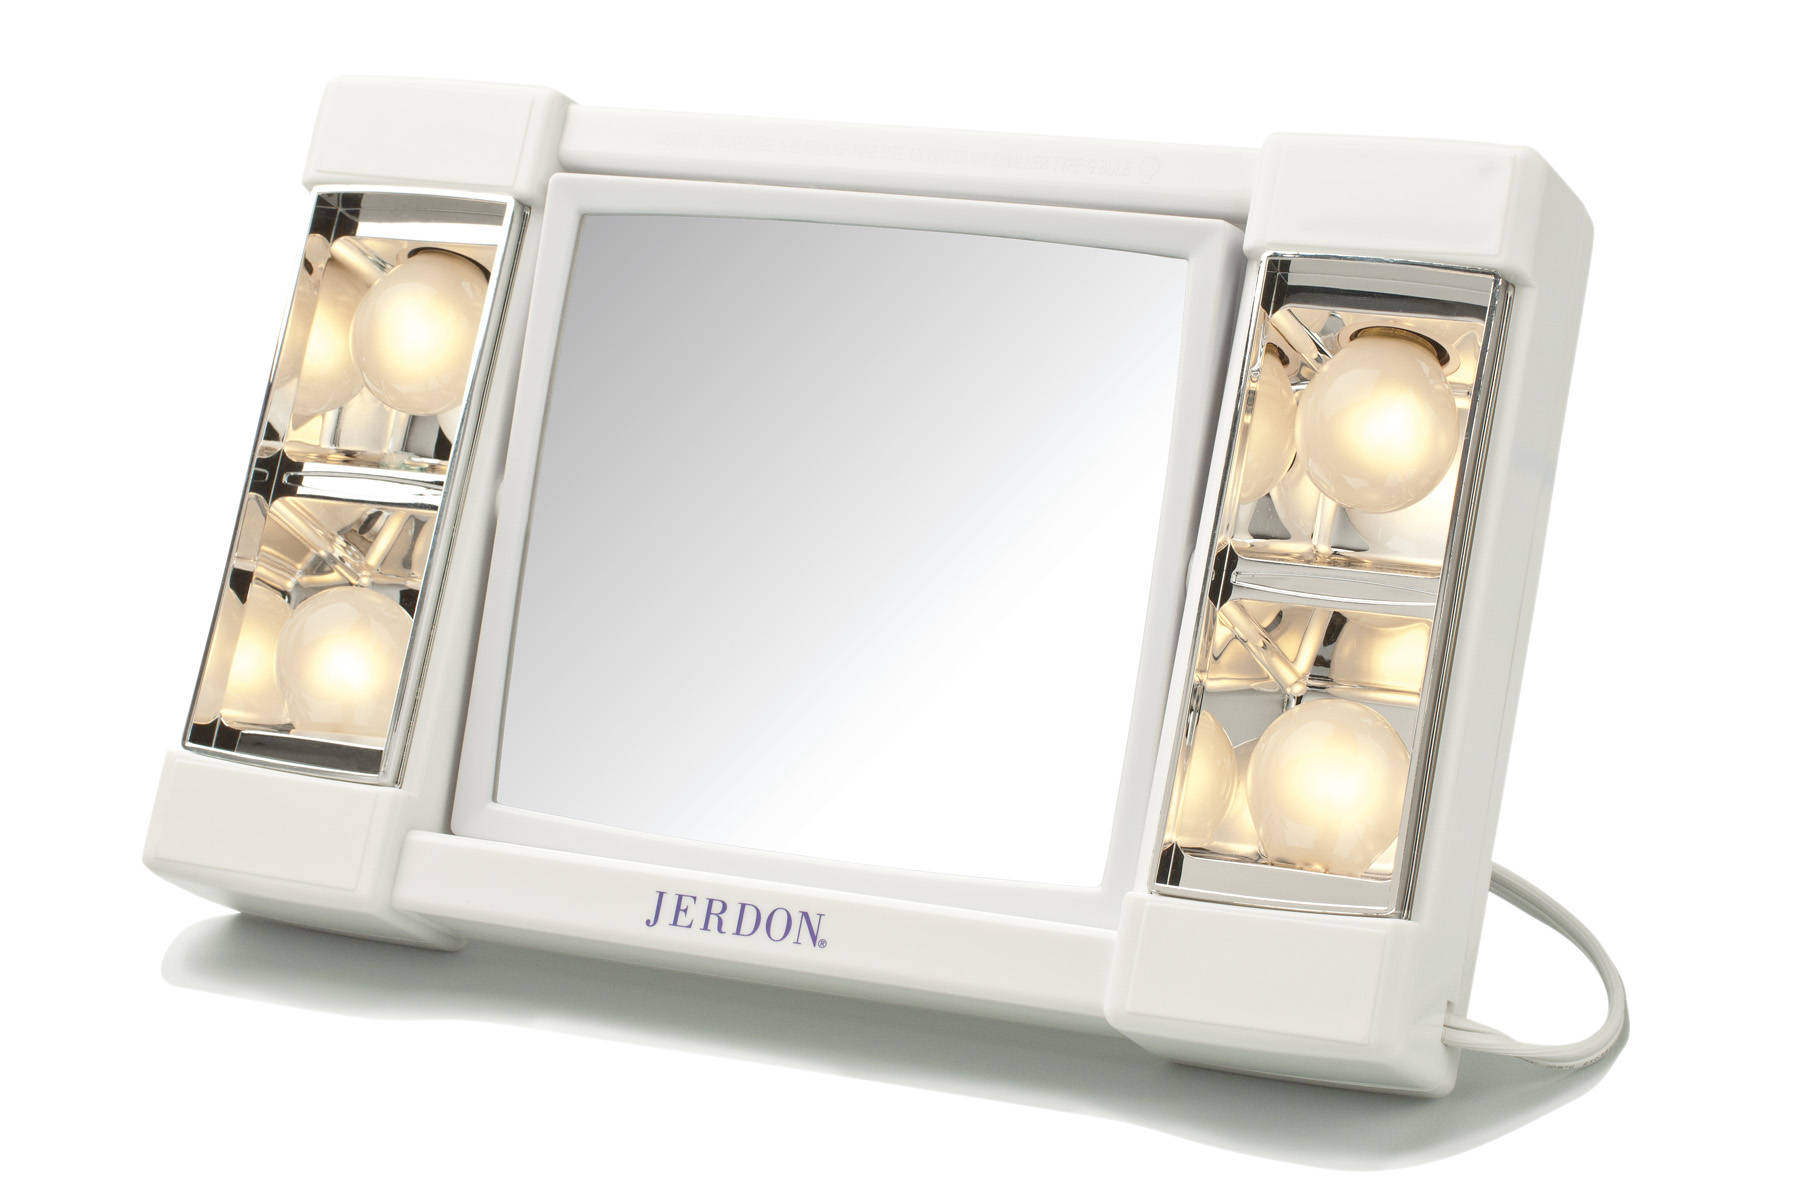 Jerdon Jp910nb Jp910nb 10x Table Top Mirror Walmart Com